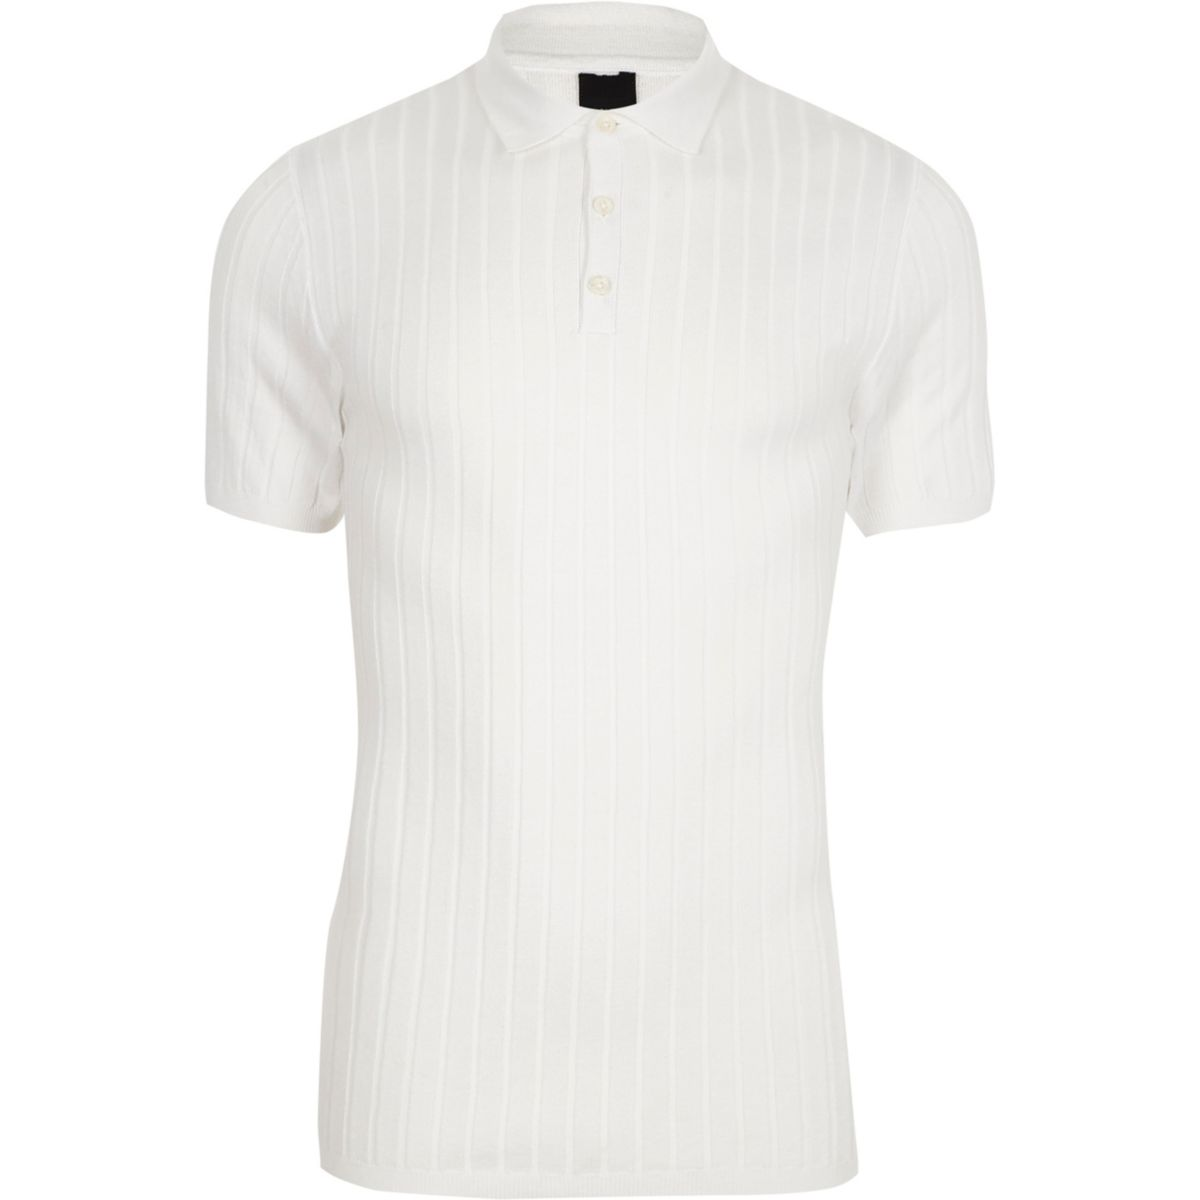 White rib knit muscle fit polo shirt